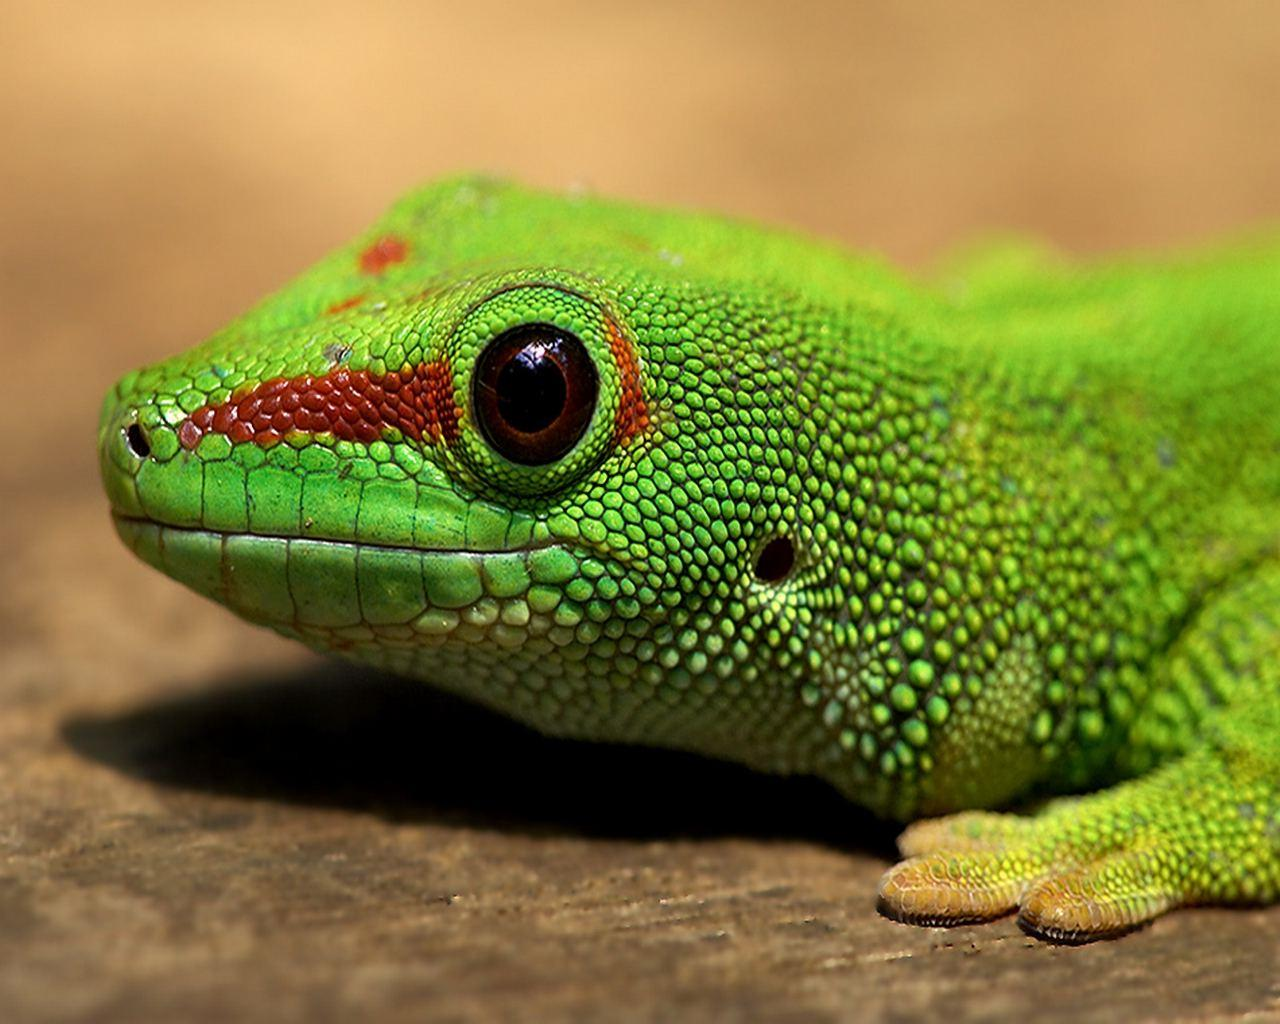 Green Lizard Face Wallpaper | Animals Desktops and Stock Photos